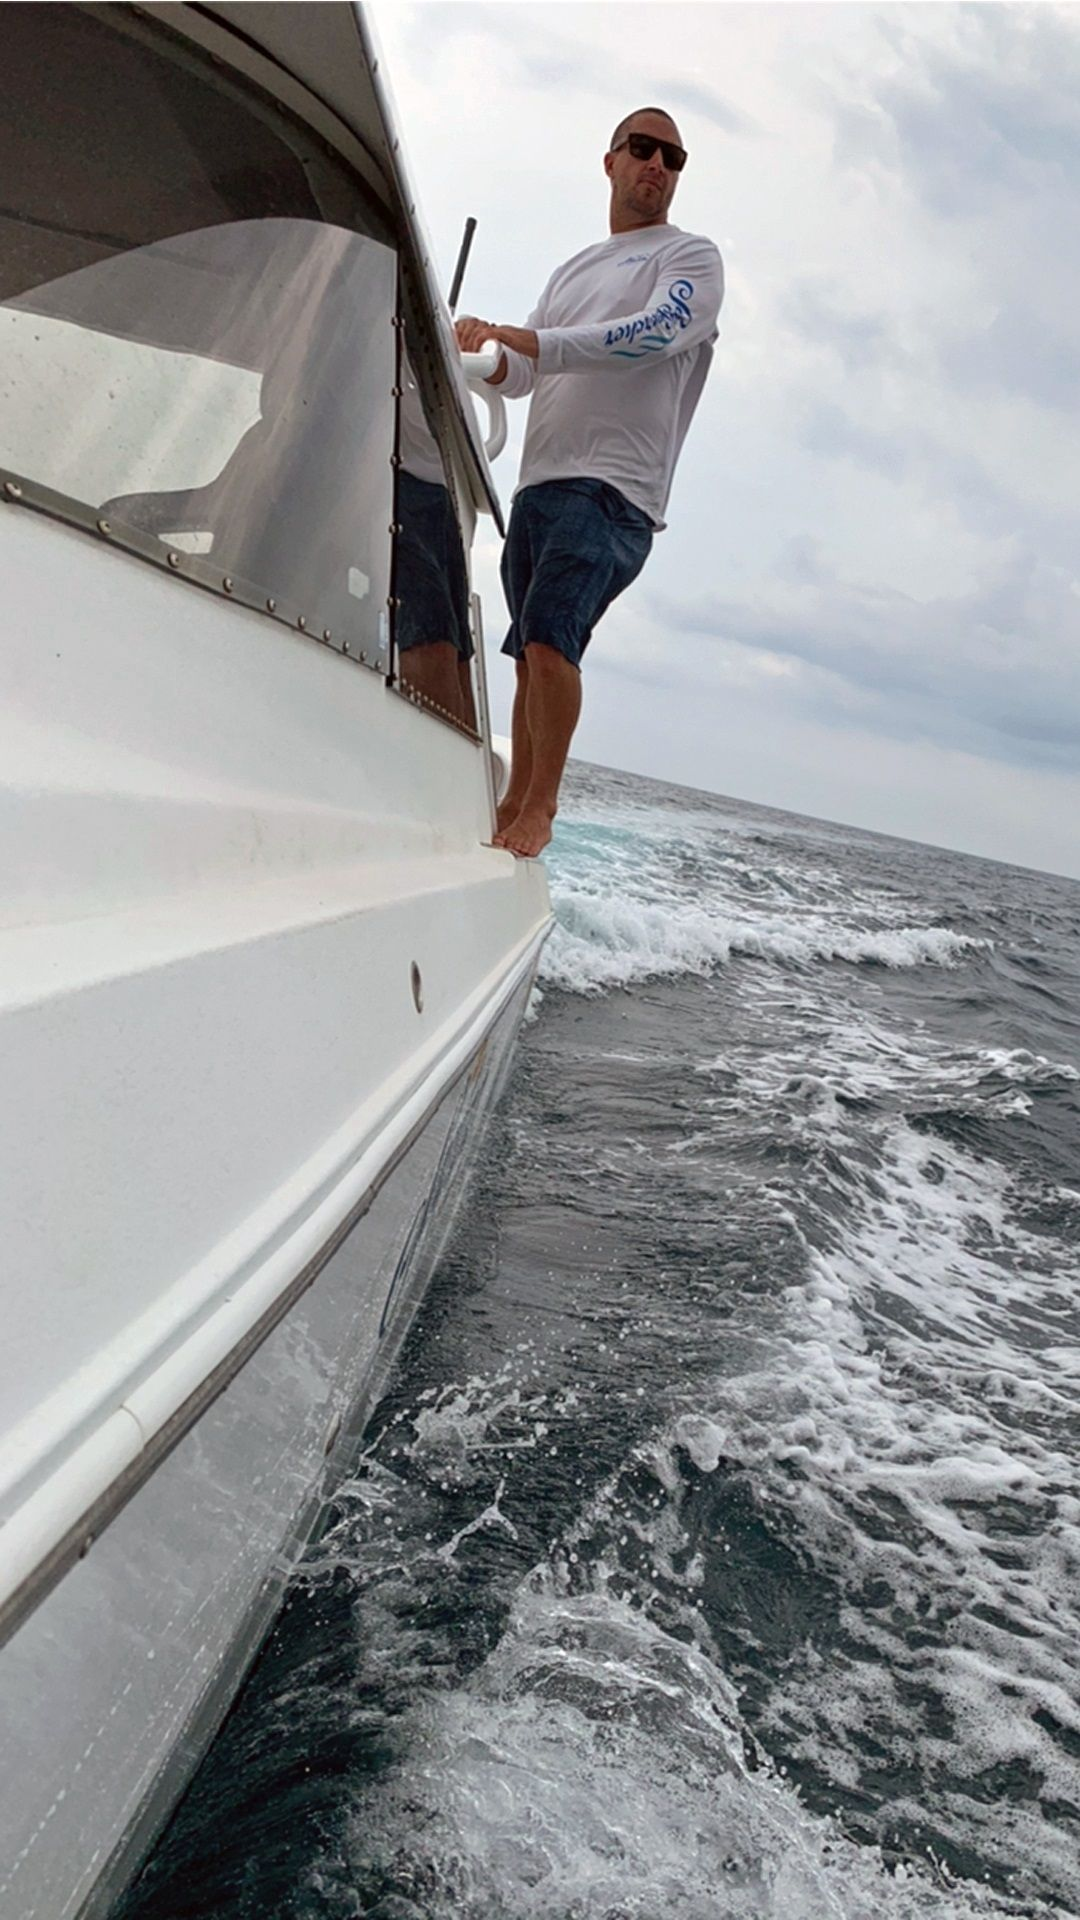 Seafarer-Exploration-The-Good-Fortune-Captain-checking-out-the-surface-conditions